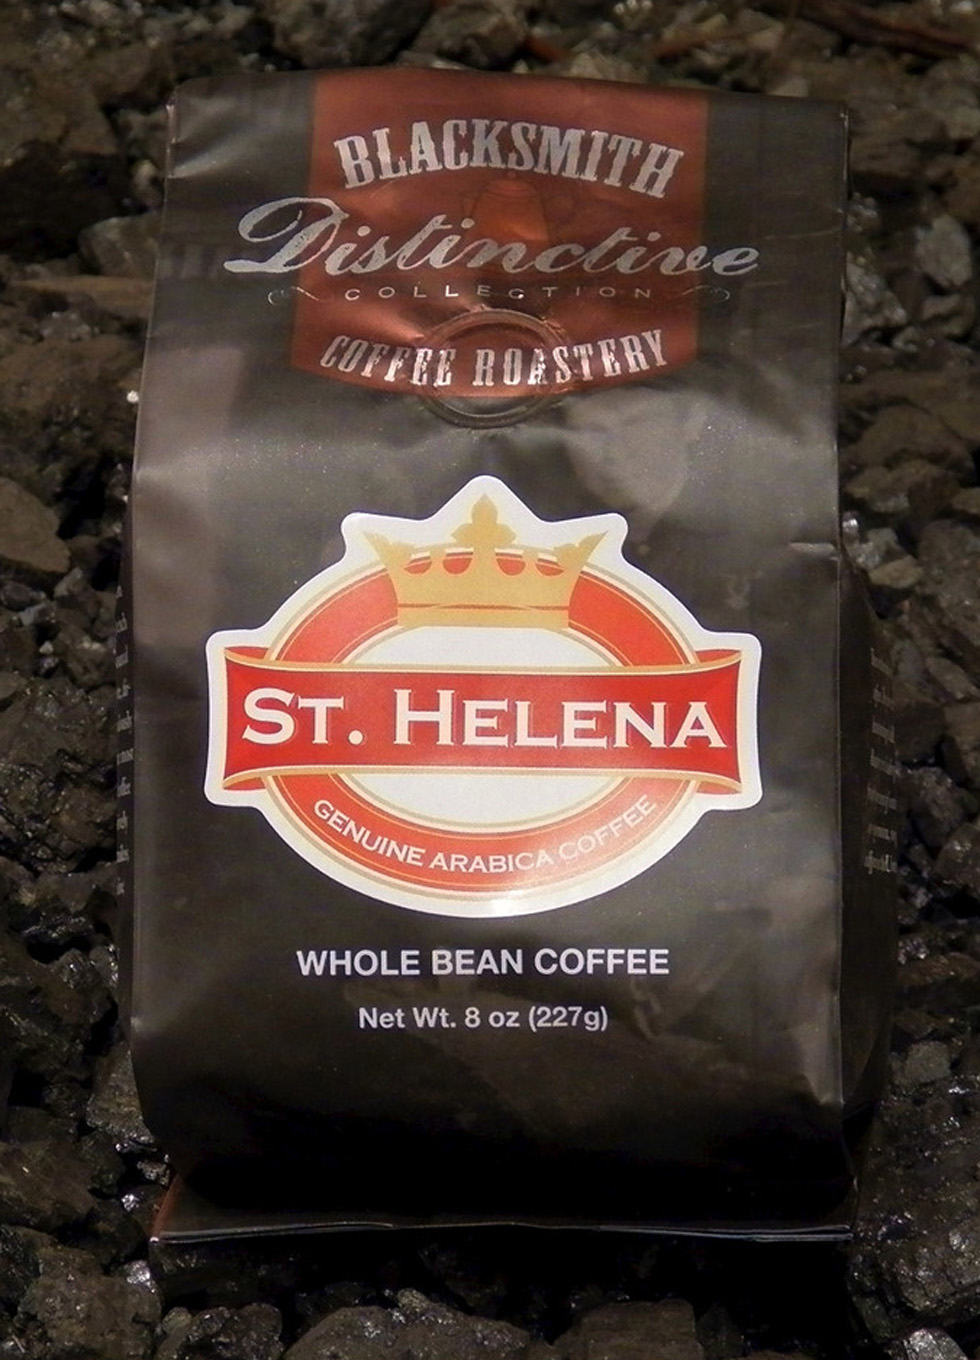 10 expensive most coffee brands in the world